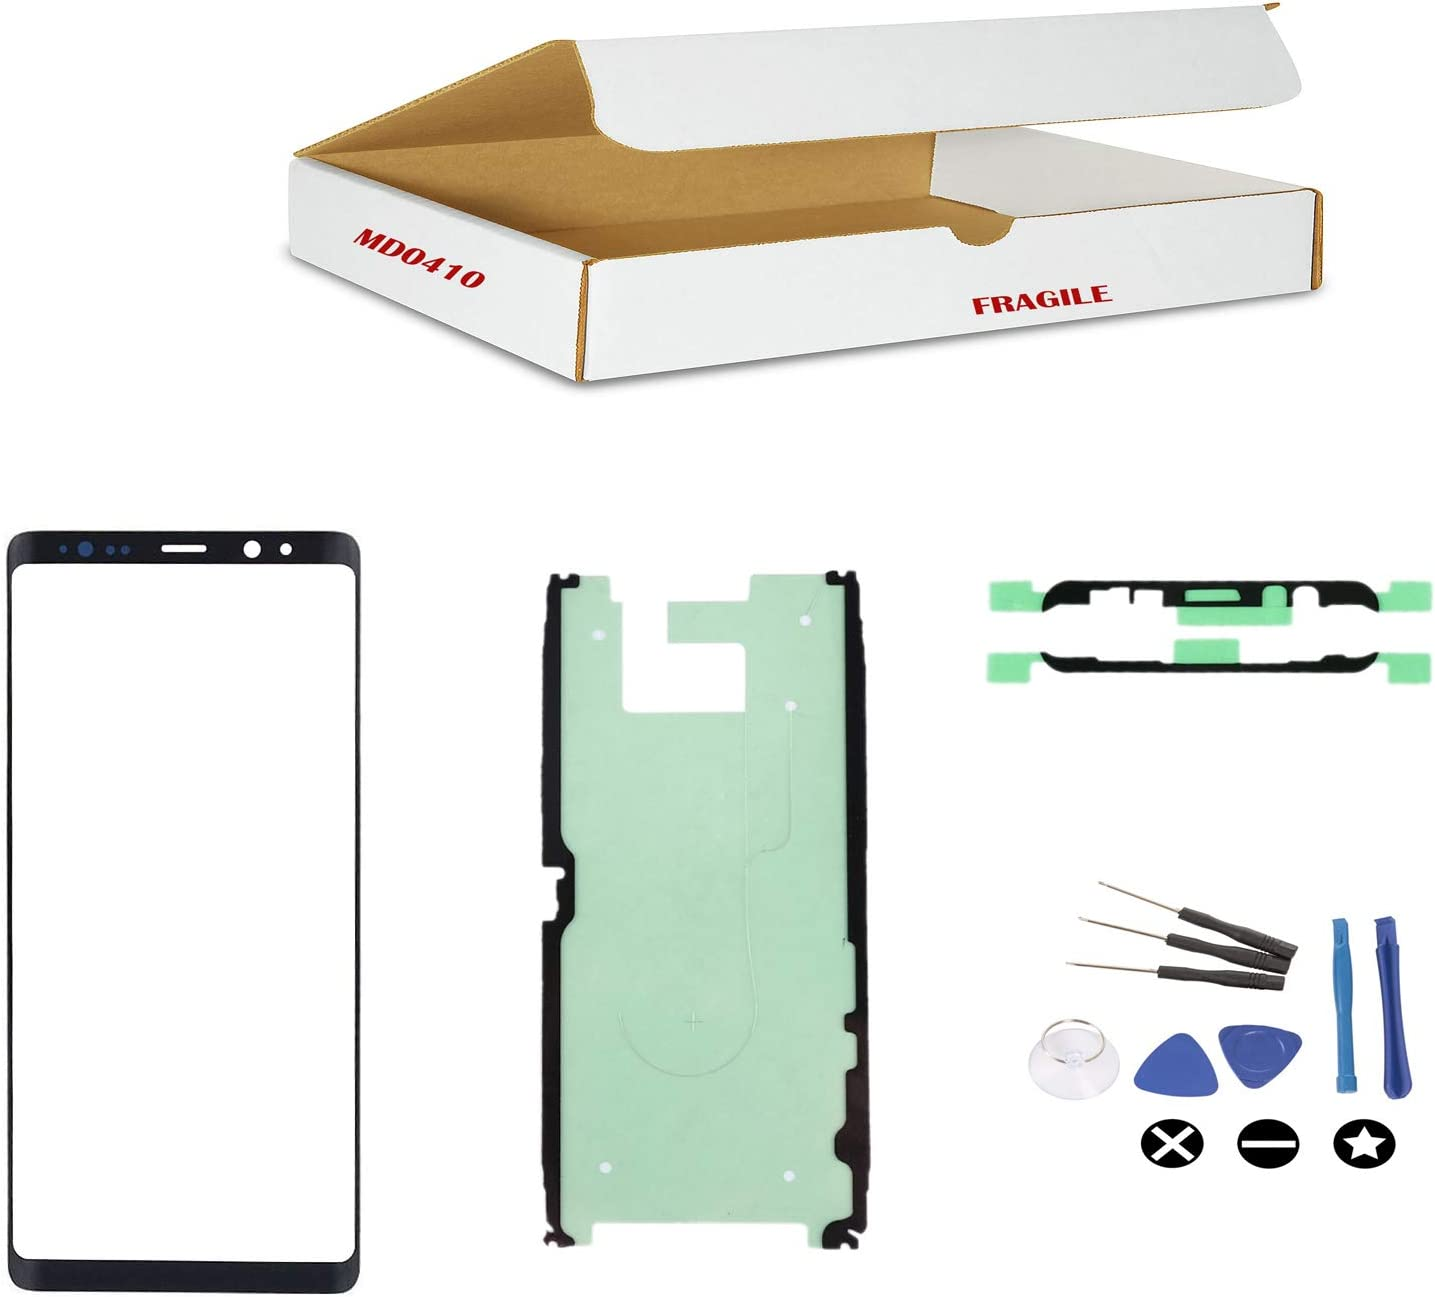 md0410 Black Front Outer Glass Lens Rear Camera Lens Frame Replacement Part Compatible for Galaxy Note 8 Phone Model N950 Repair Tools Kit LCD Screen /& Touch Digitizer Not Included Back Cover